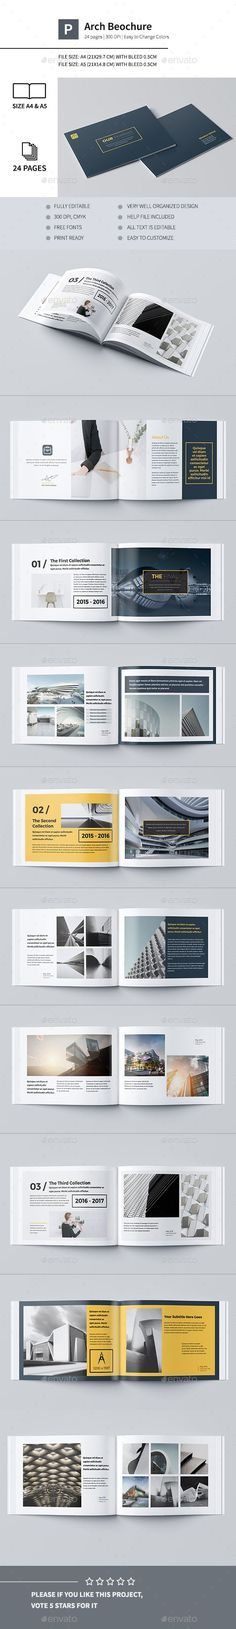 Our Portfolio Architecture 24 Pages A4 & A5 Template InDesign INDD. Download here: http://graphicriver.net/item/our-portfolio-architecture-24-pages-a4-a5/16254091?ref=ksioks #architectureportfolio